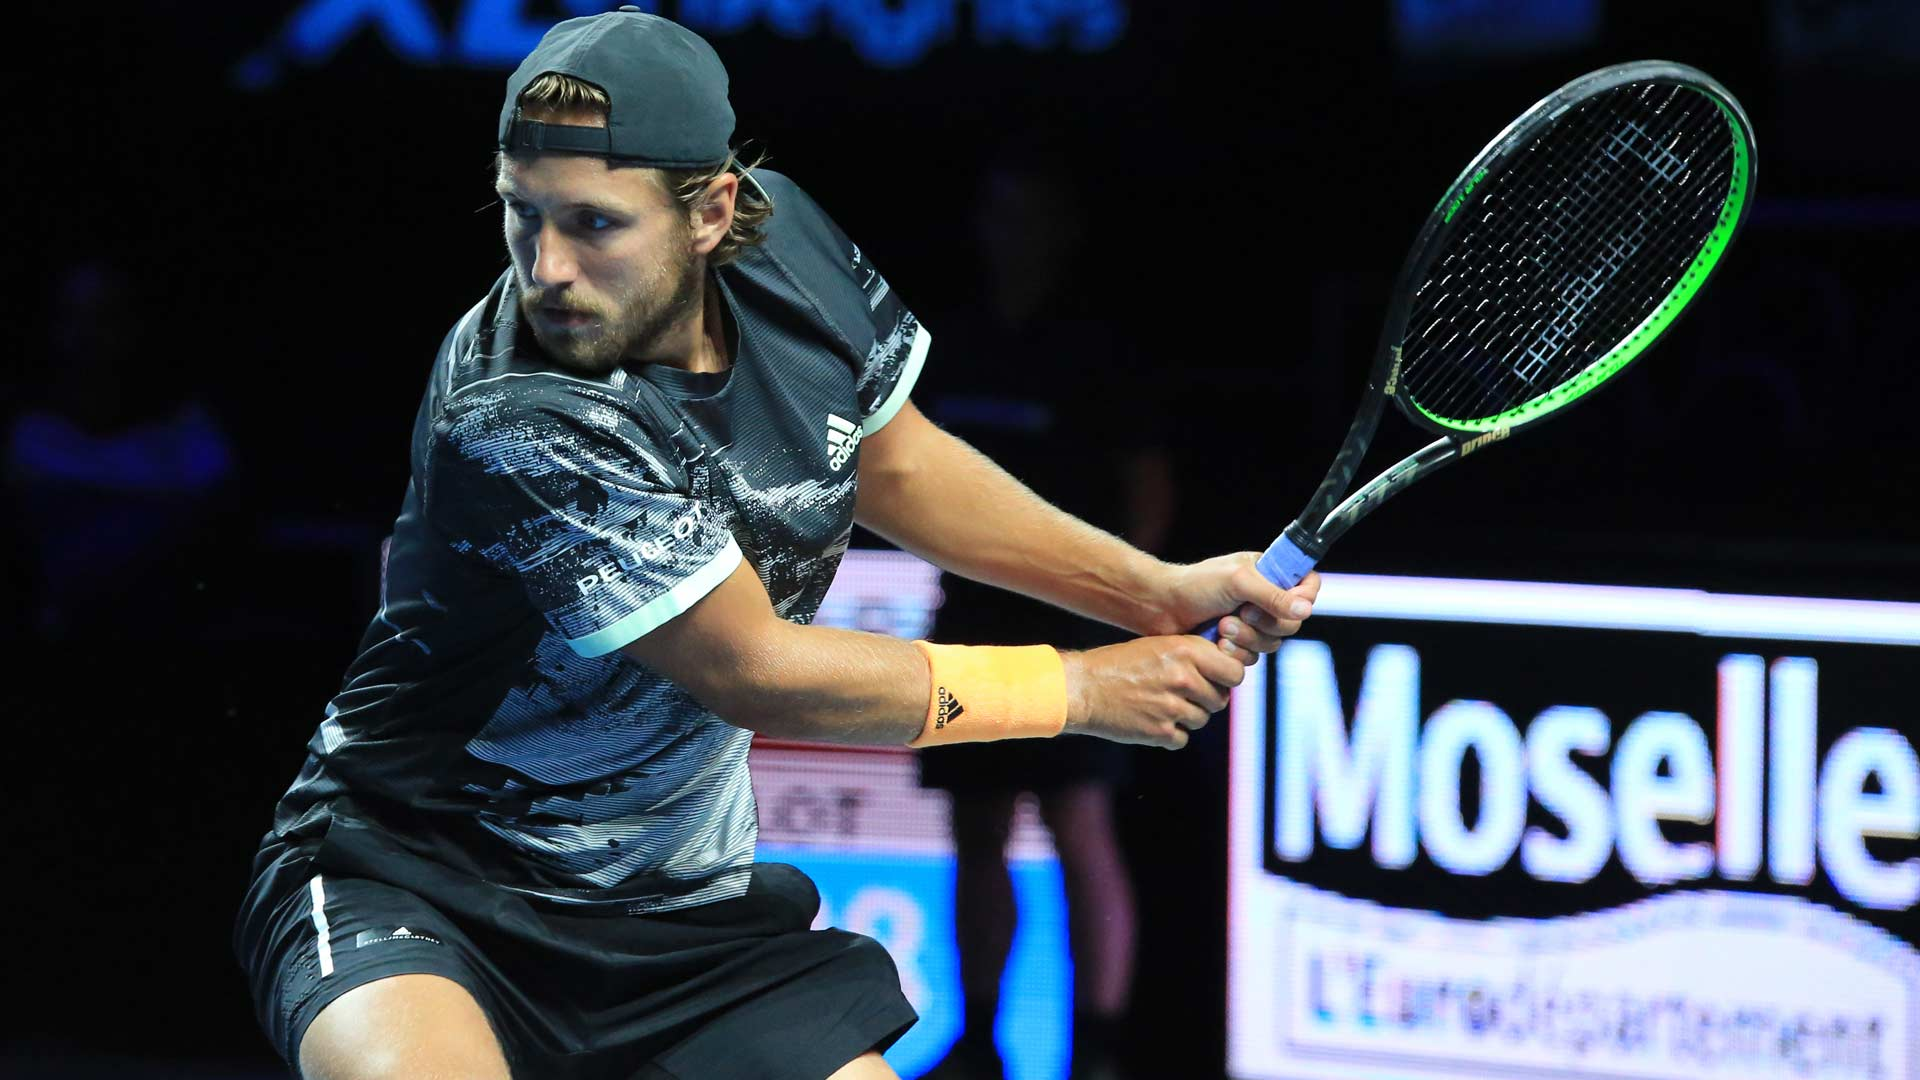 Lucas Pouille hits a backhand in Metz 2019